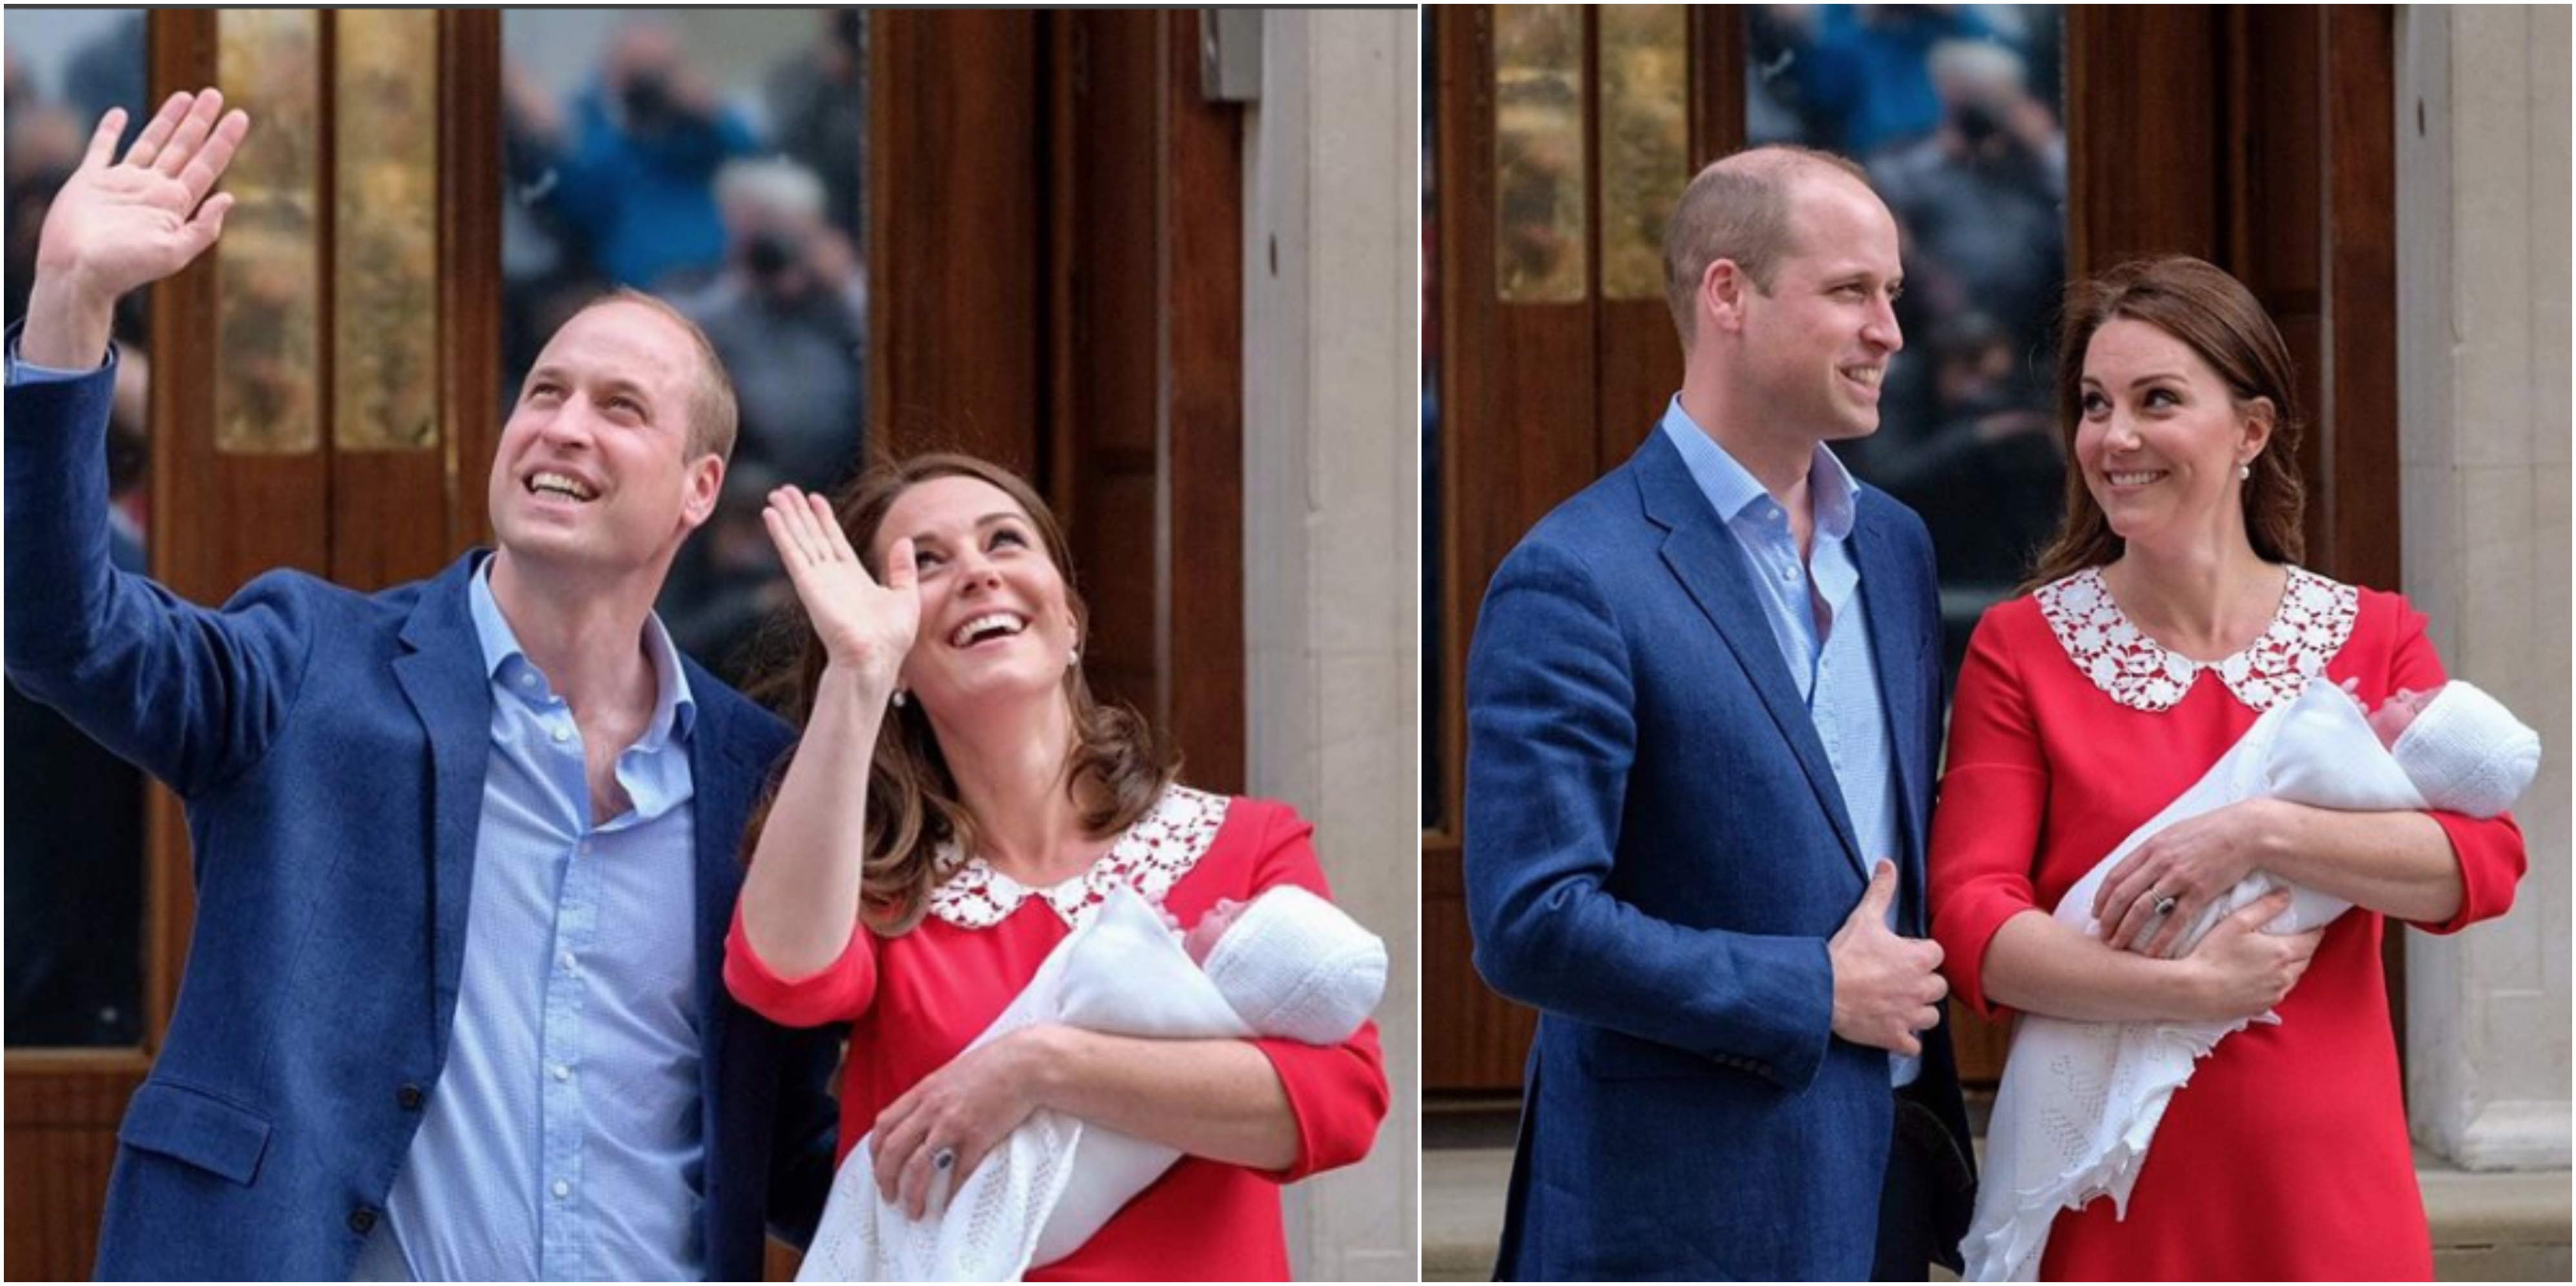 When Will We Find Out The New Royal Baby Name?